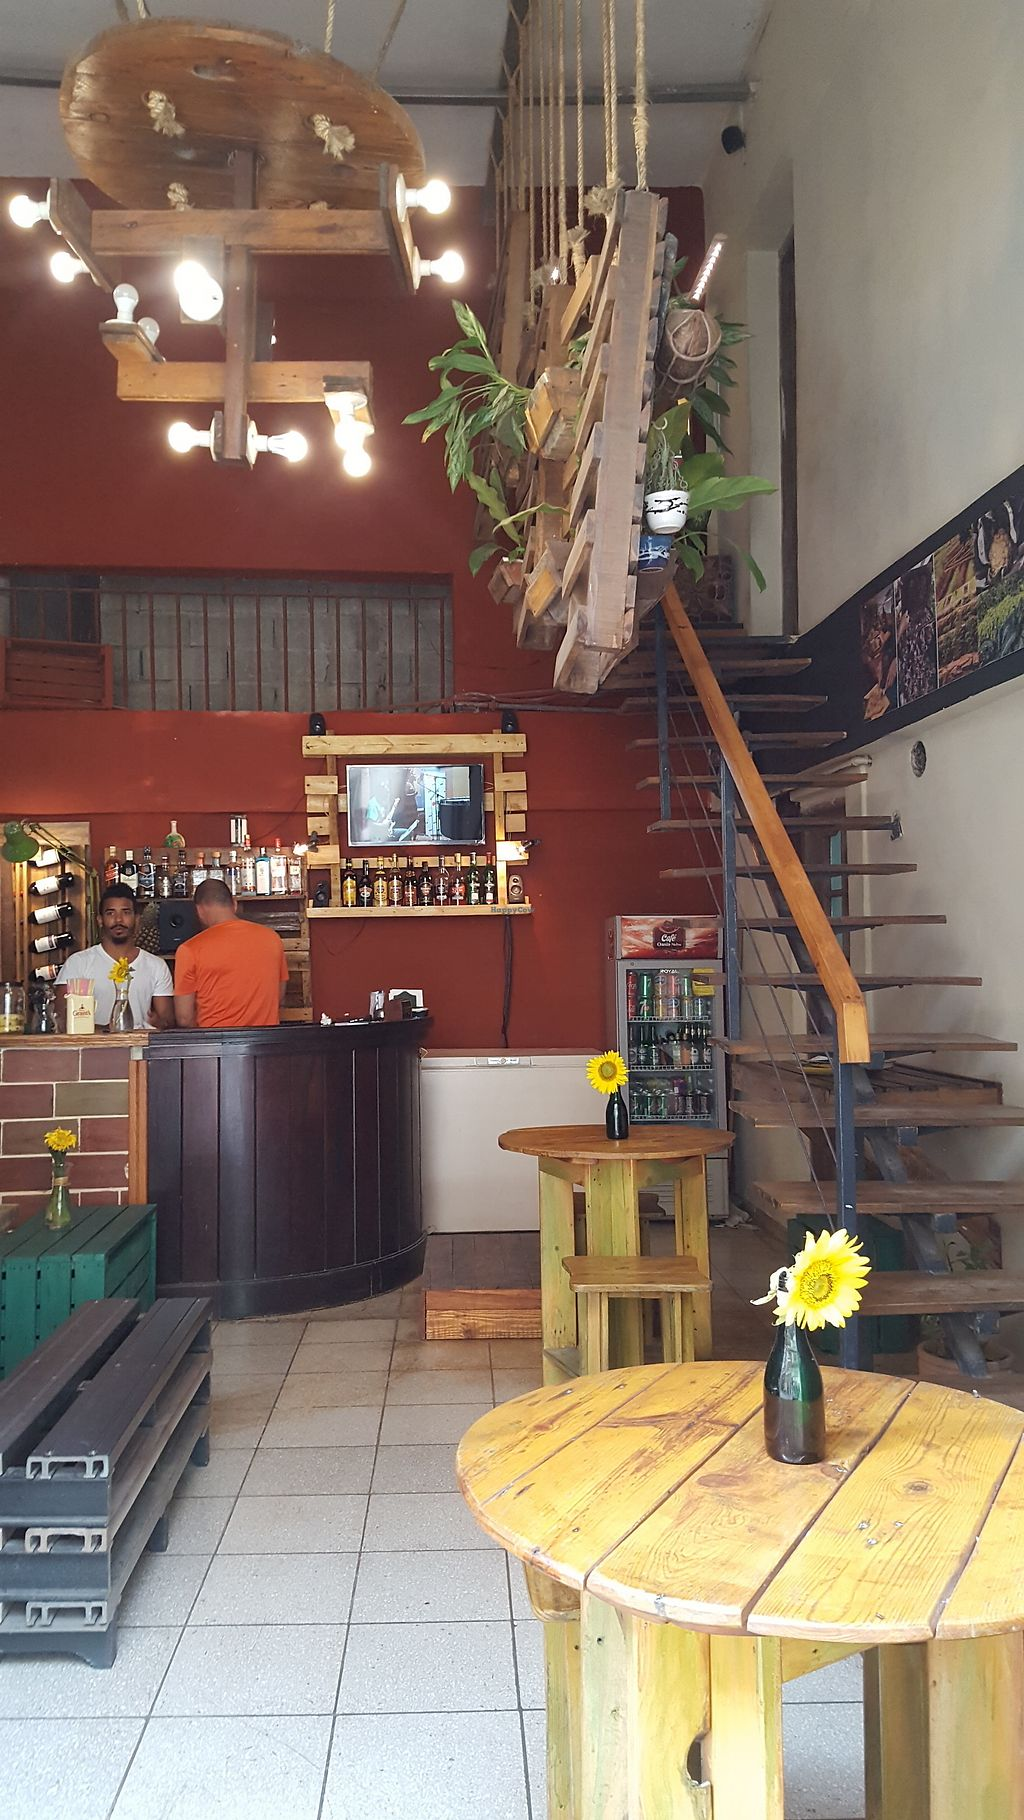 """Photo of Oasis Nelva Cafe Creperie  by <a href=""""/members/profile/vegetarian_hk"""">vegetarian_hk</a> <br/>nice place <br/> February 25, 2018  - <a href='/contact/abuse/image/81039/363649'>Report</a>"""